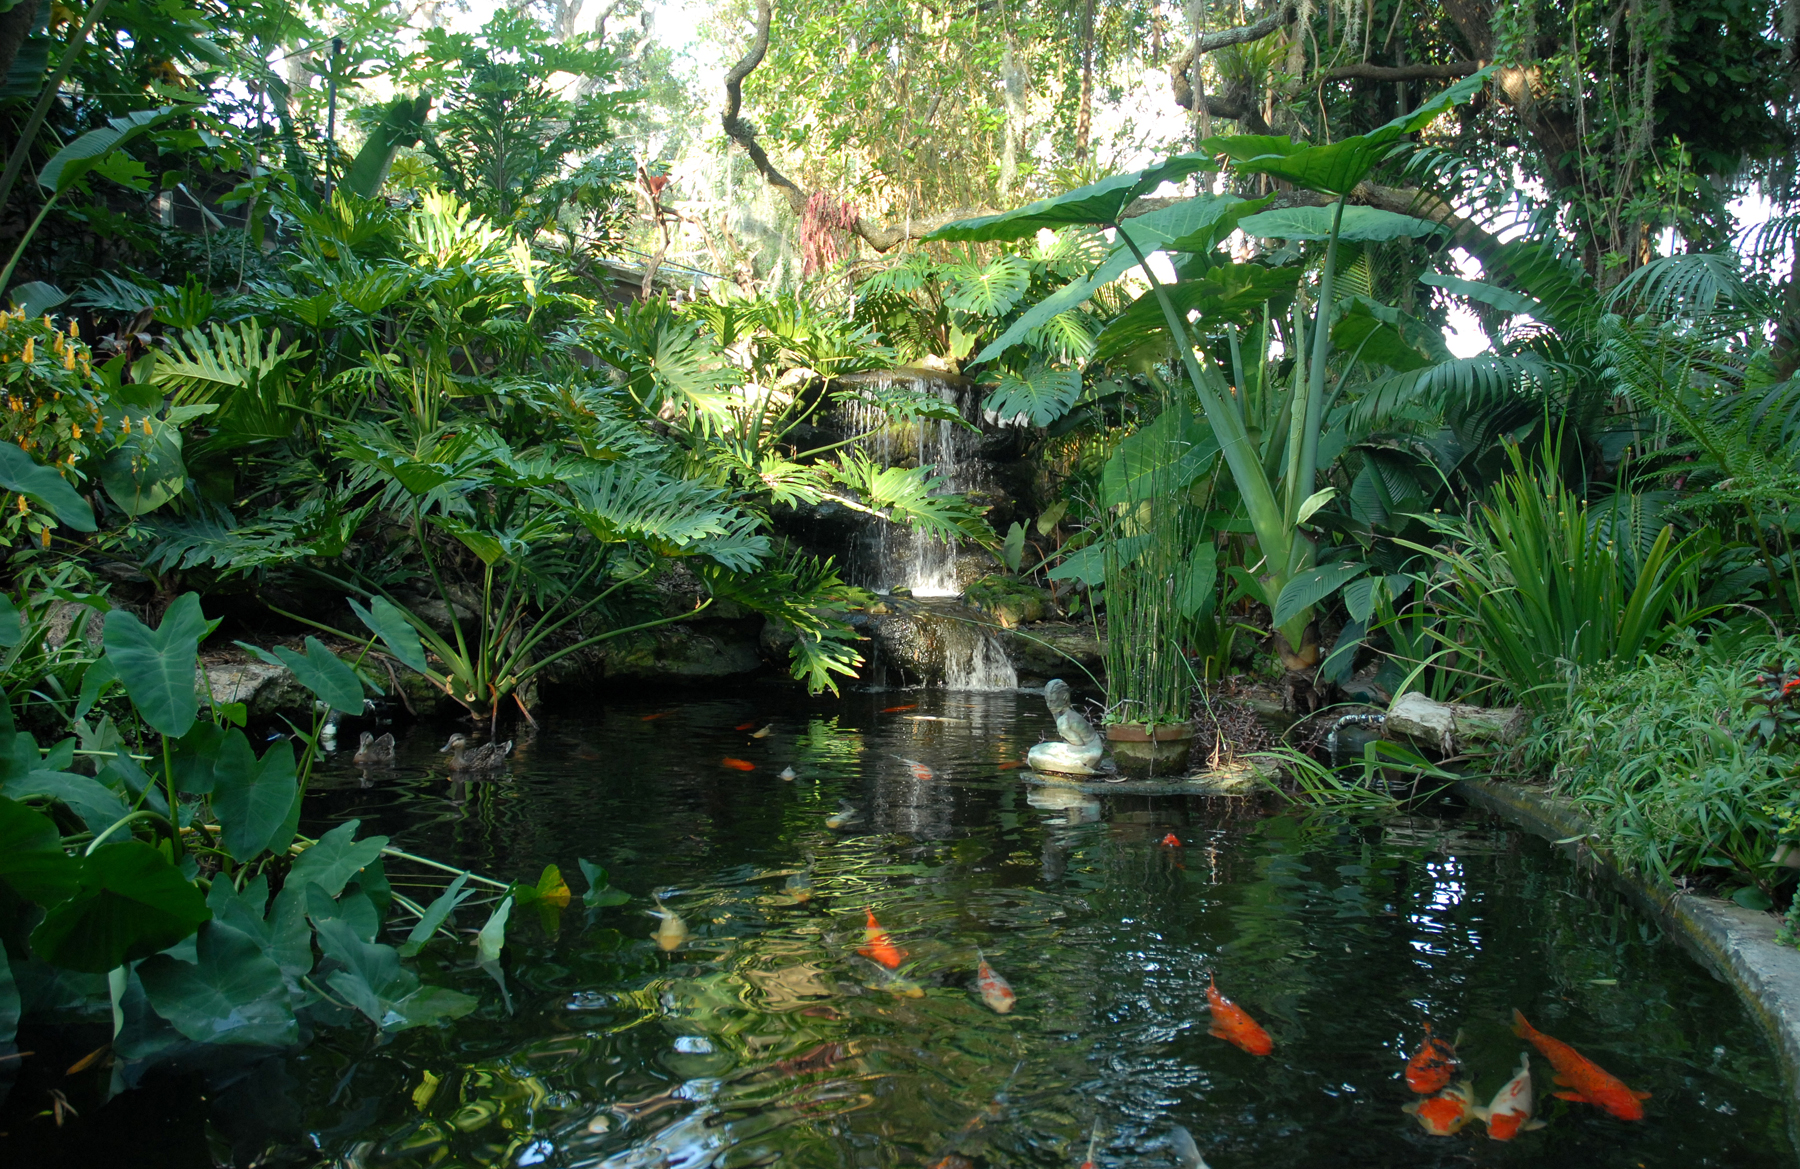 Charmant Koi Pond. Credit: Courtesy Marie Selby Botanical Gardens. Bayfront With  Palms. Credit: Courtesy Marie Selby Botanical Gardens.